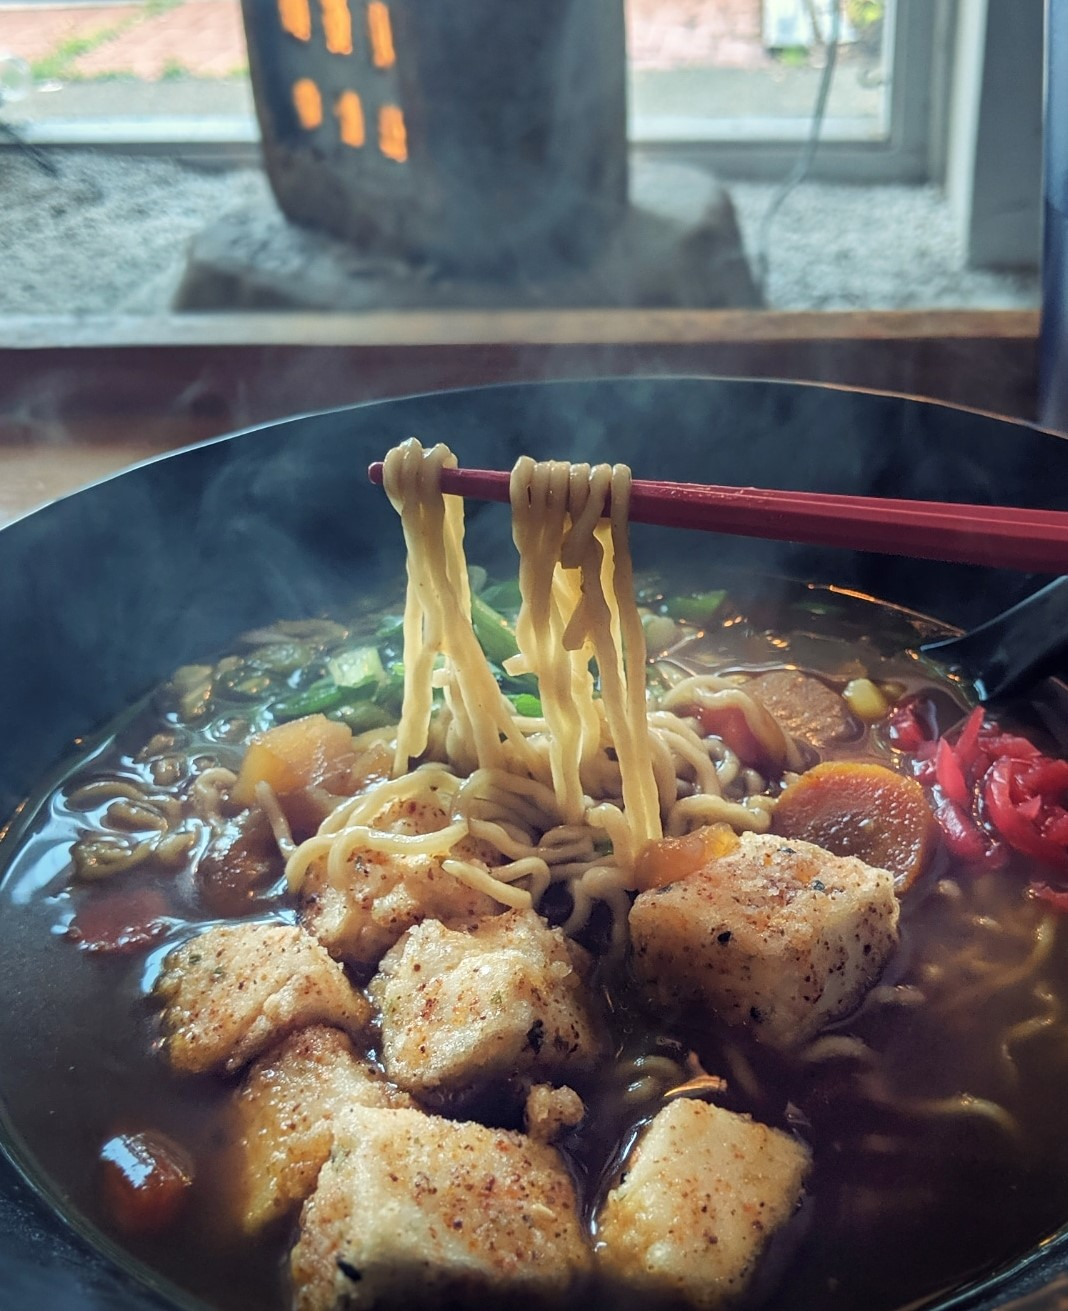 Japanese curry ramen with fried tofu was spicy, full of noodles and flavor at  SATO Ramen .